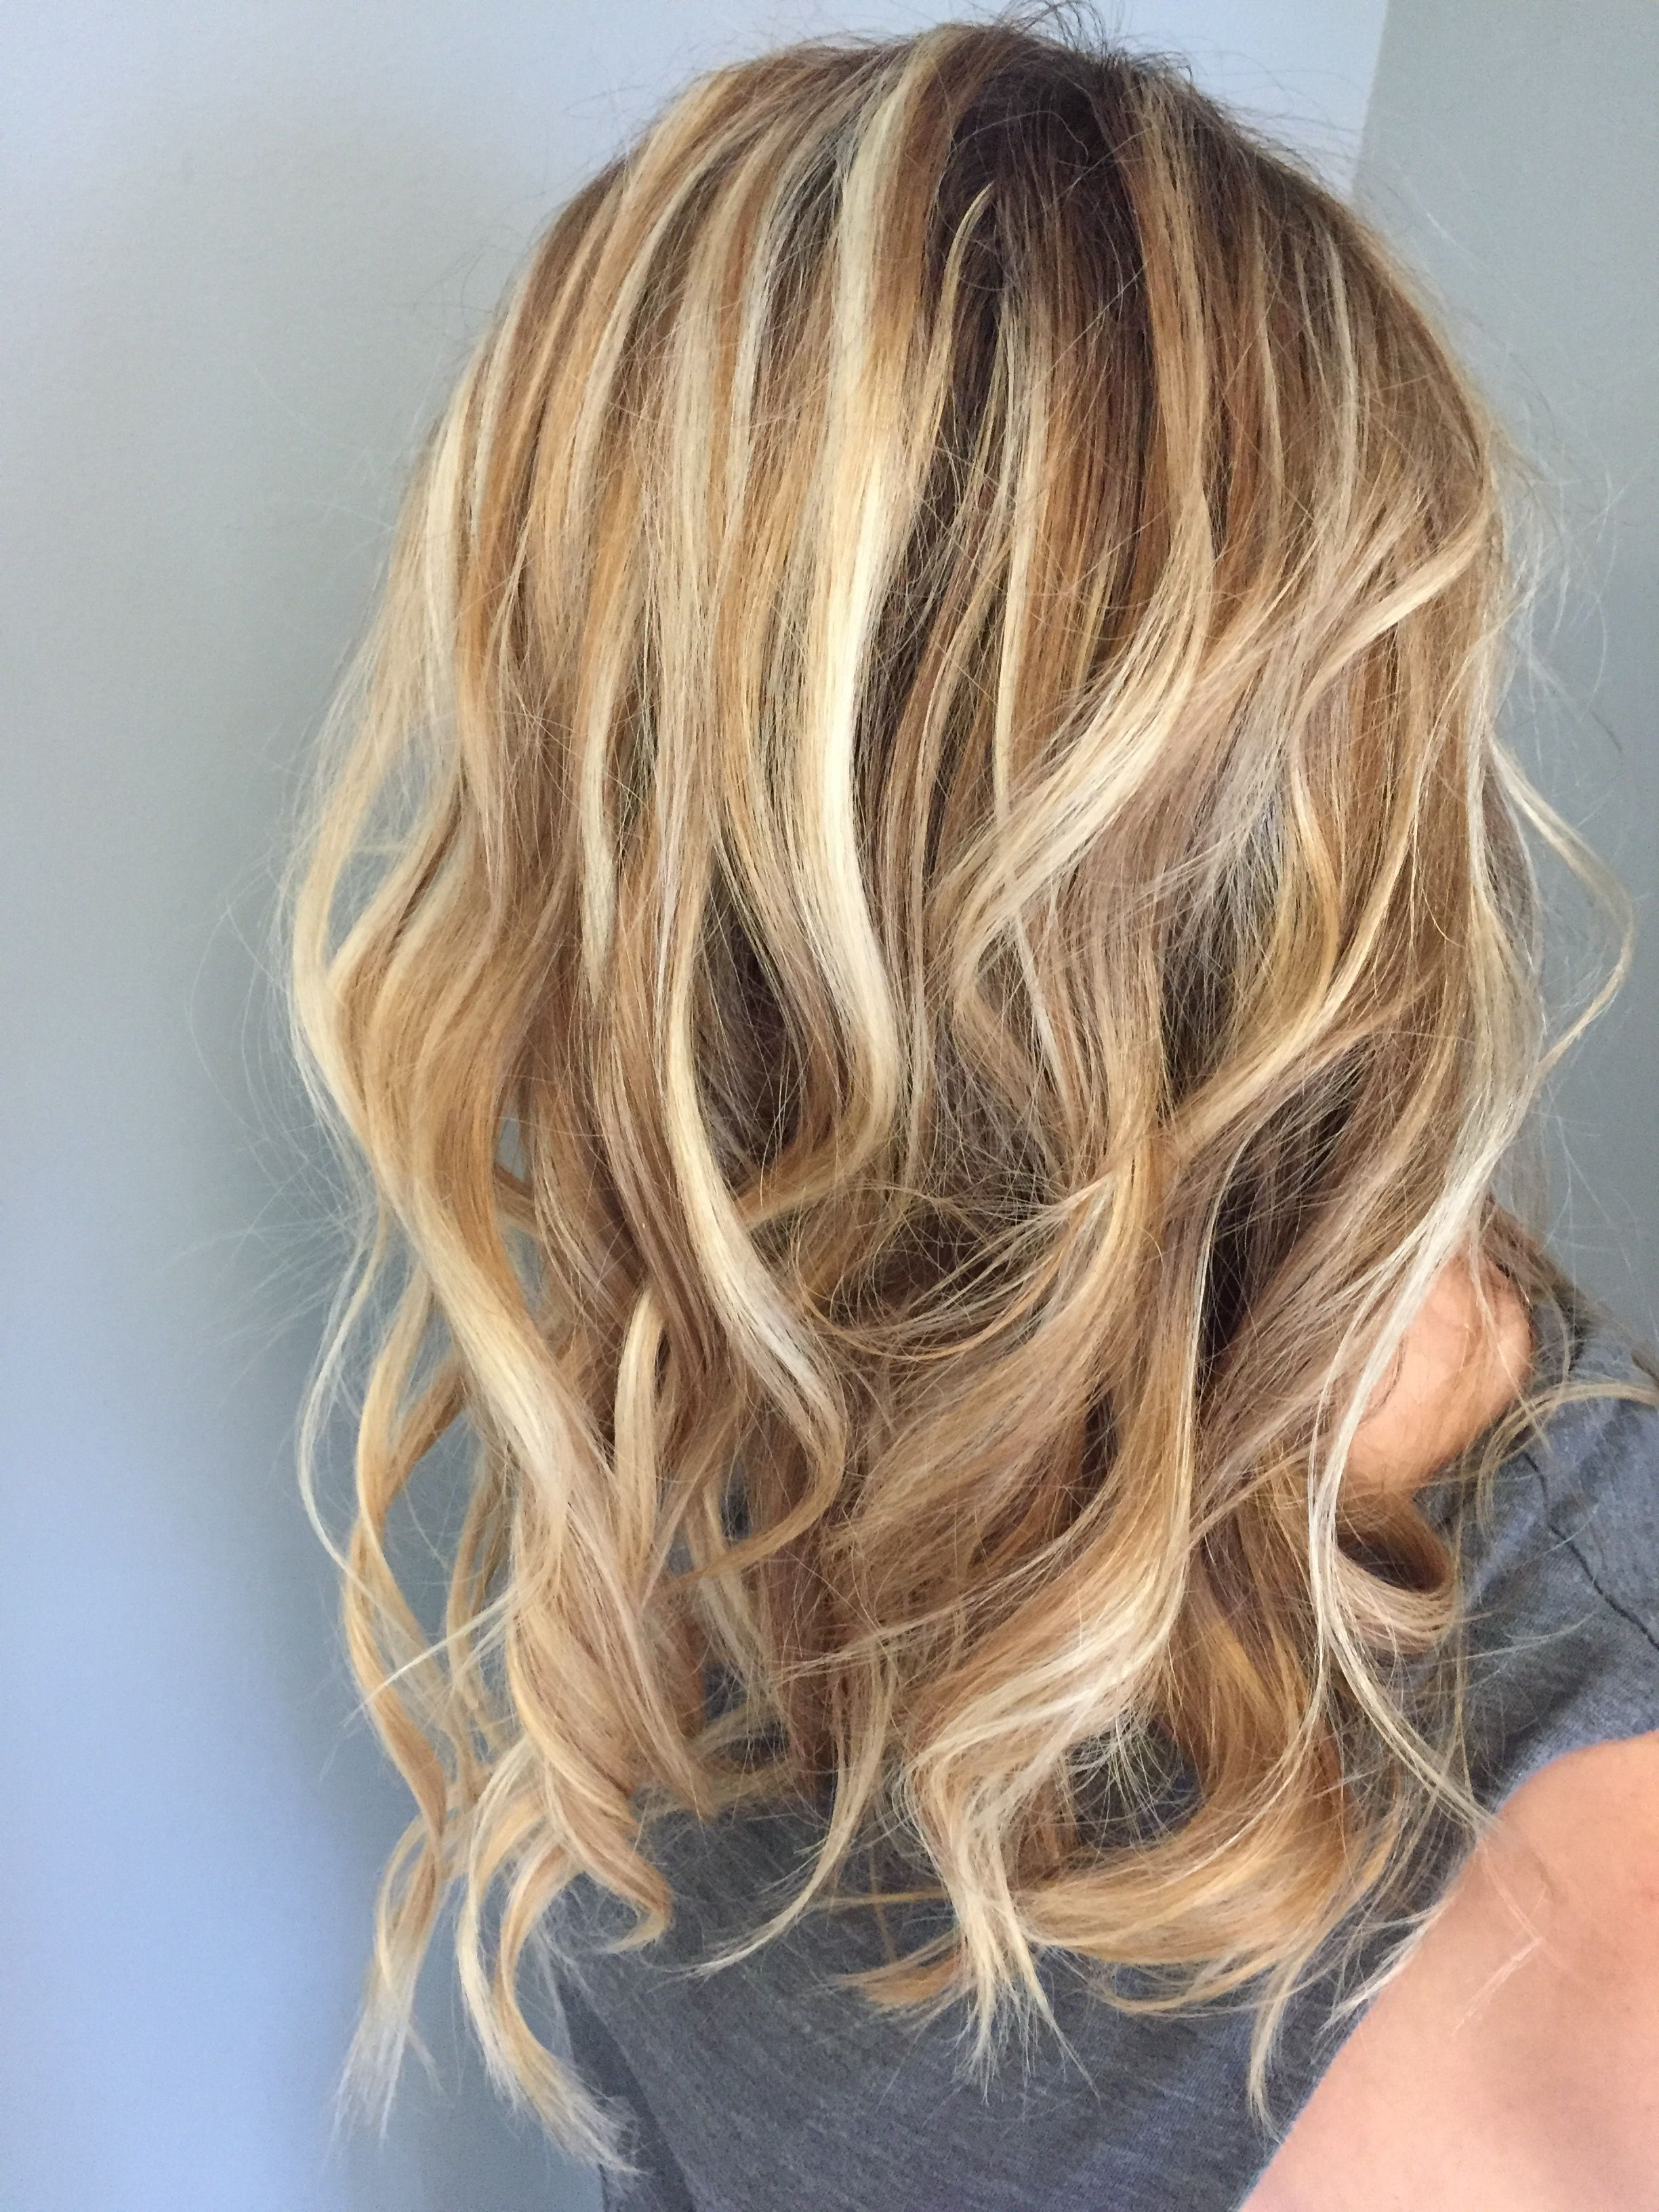 Pin by Louis Lopez on Core hair houston  Long hair styles, Hair